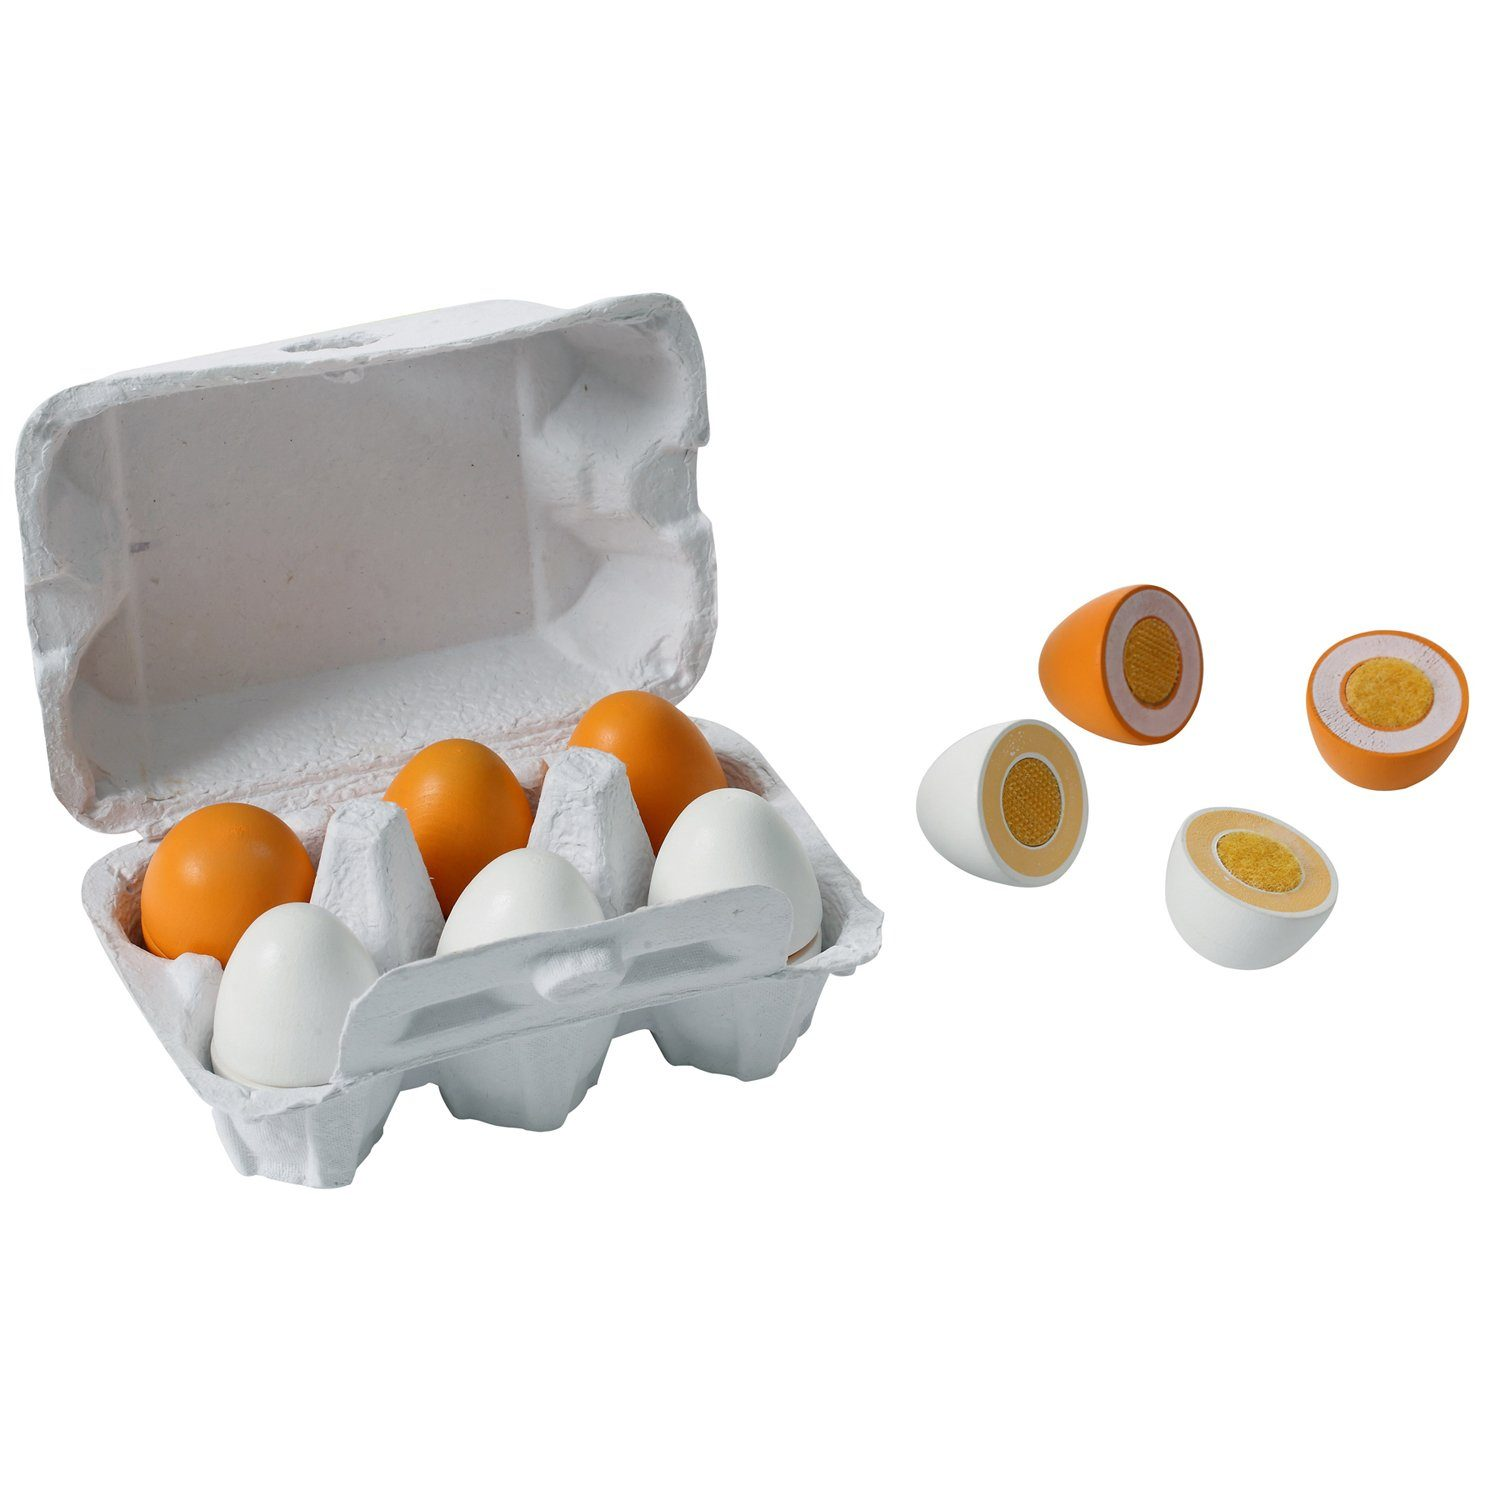 Wooden Velcro Eggs (6 Pack)